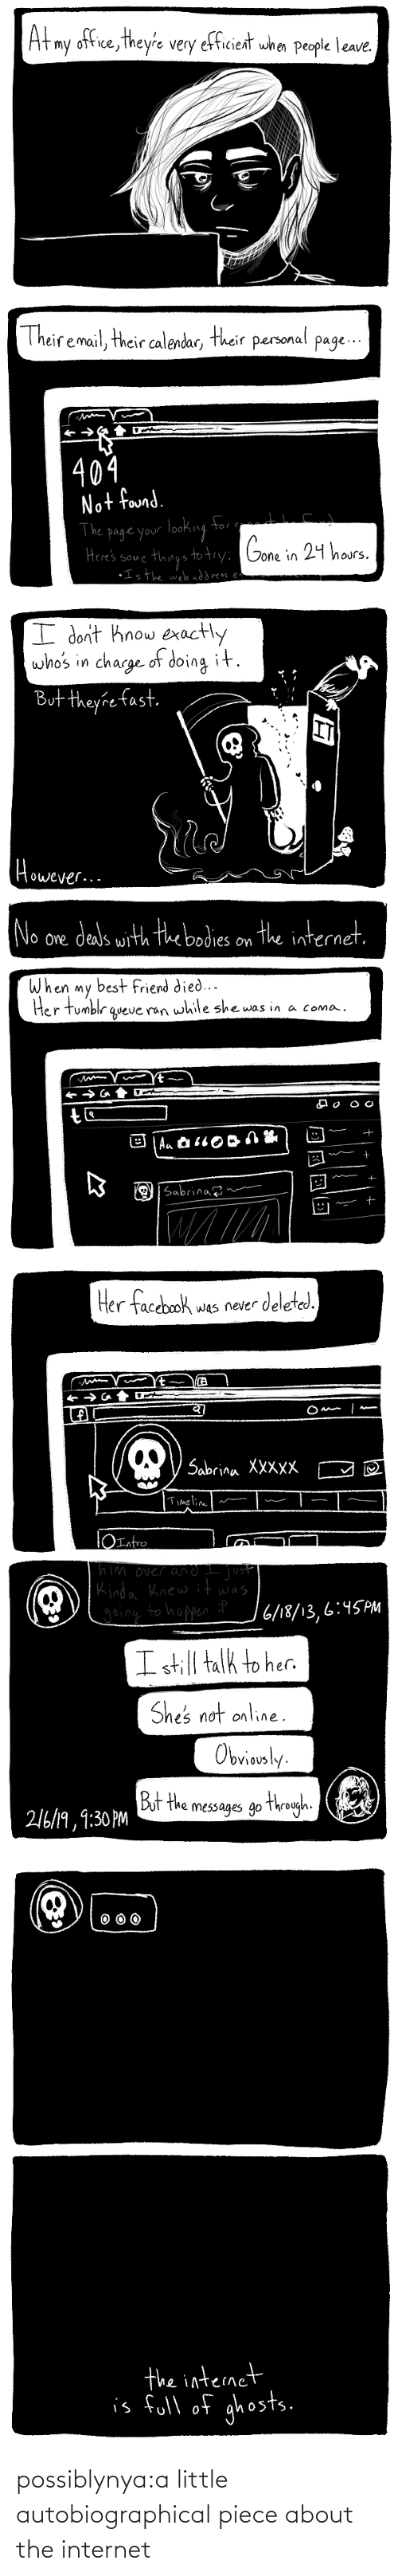 the internet: possiblynya:a little autobiographical piece about the internet